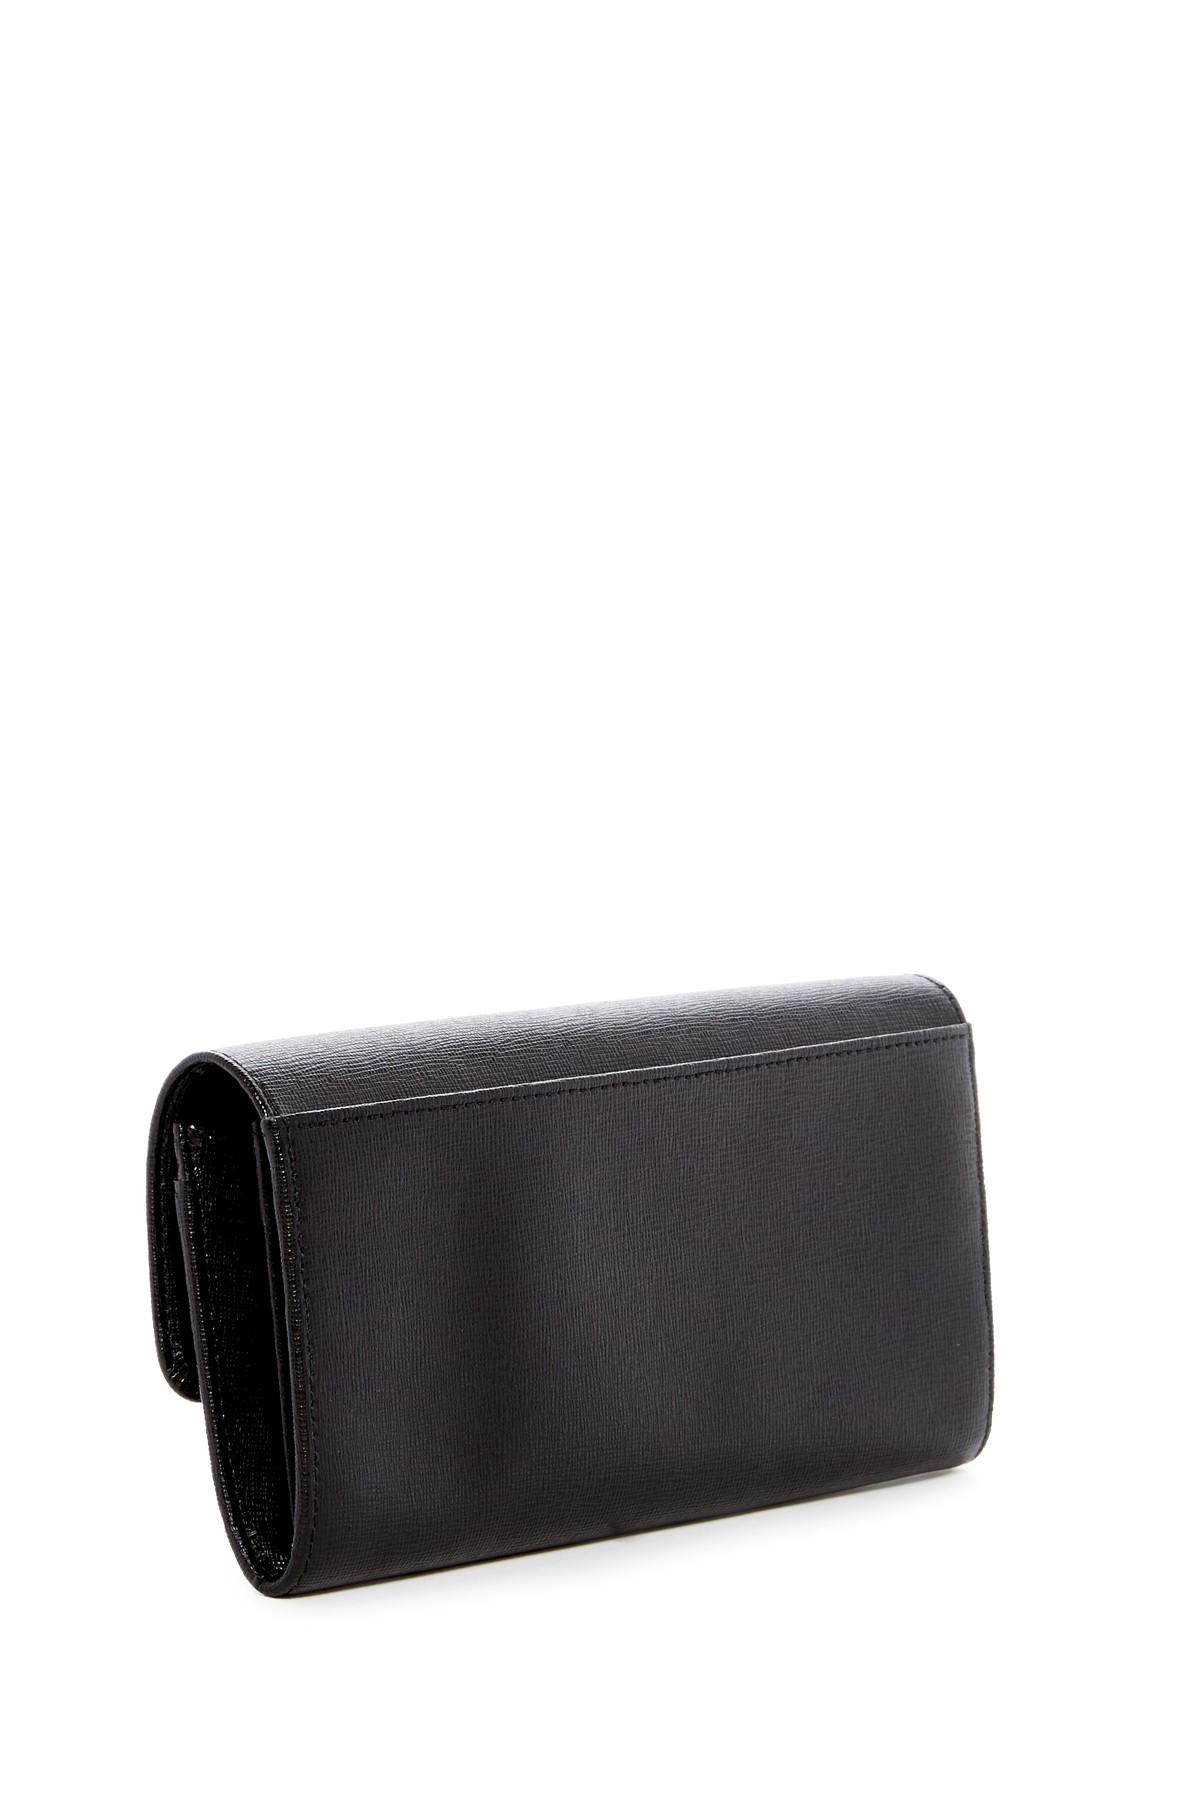 Furla Julia Xl Leather Bifold Wallet In Black Lyst